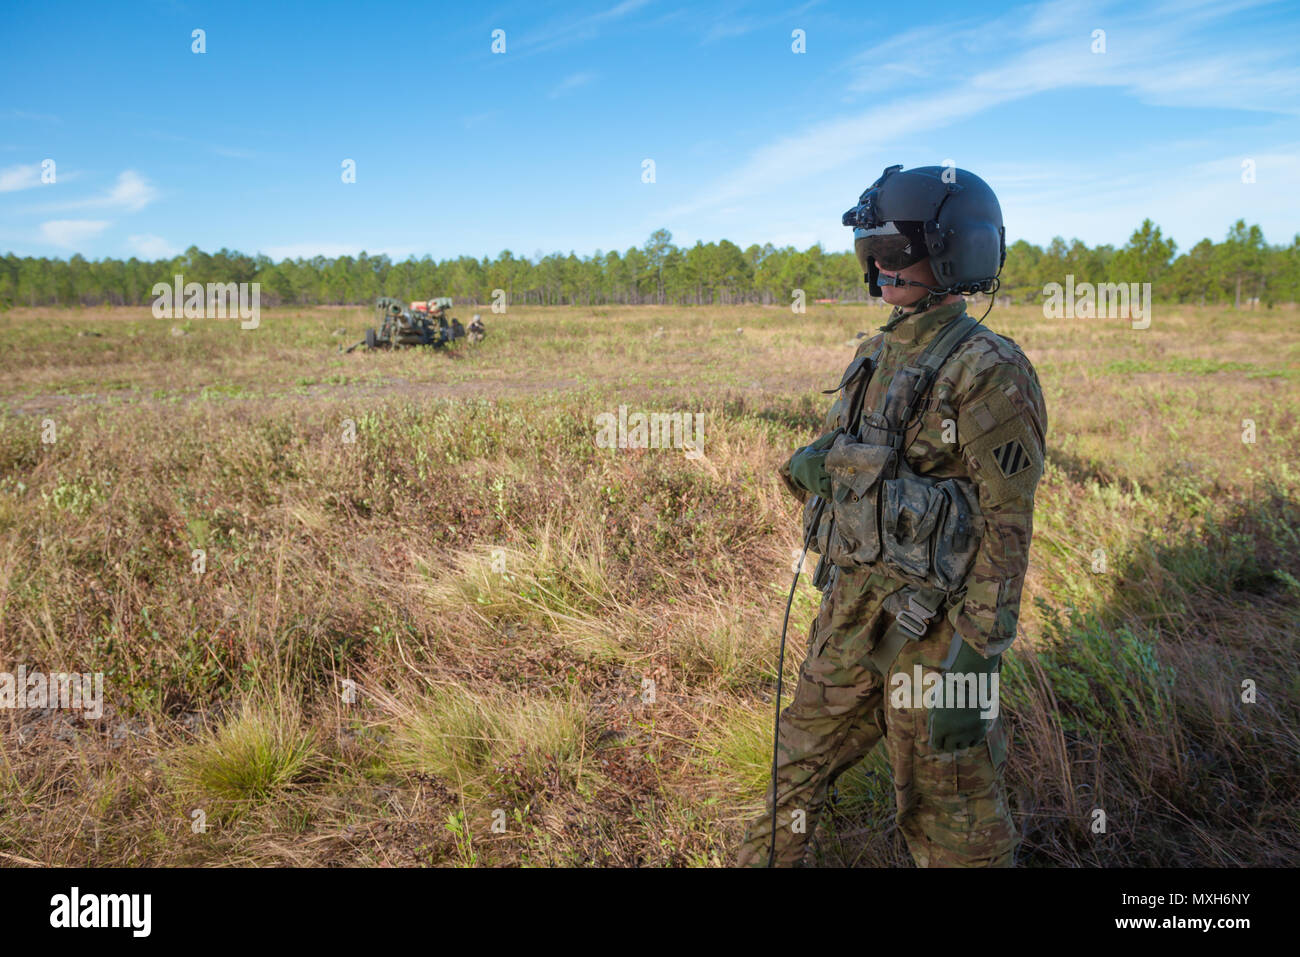 A U.S. Army Chinook crewmember assigned to 3rd Combat Aviation Brigade observes soldiers from 3rd Division Artillery emplace artillery pieces on at a training site on Fort Stewart, 6 Nov 2016. (U.S. Army photo by Lt. Col. Brian J. Fickel) Stock Photo